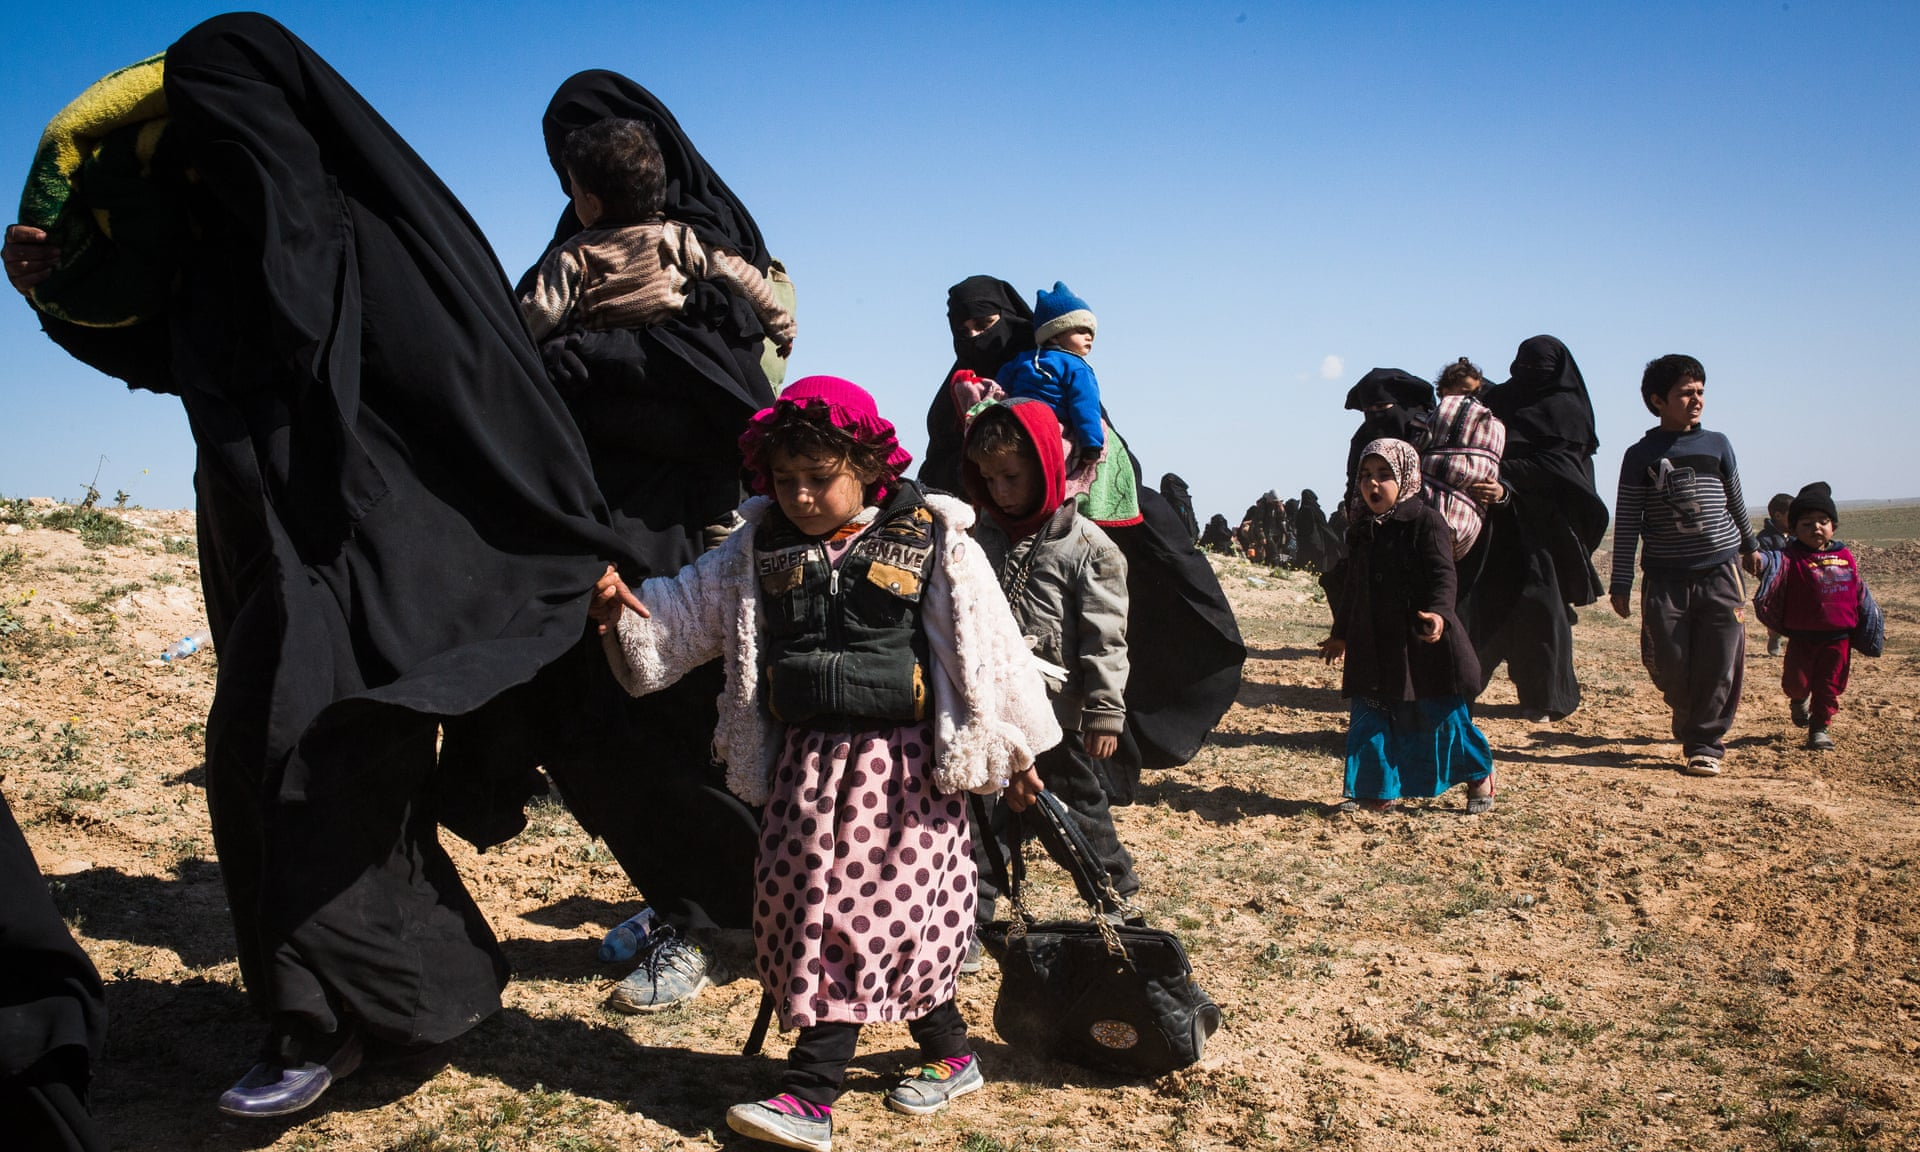 Isis fighters firing at escaping family members, says coalition